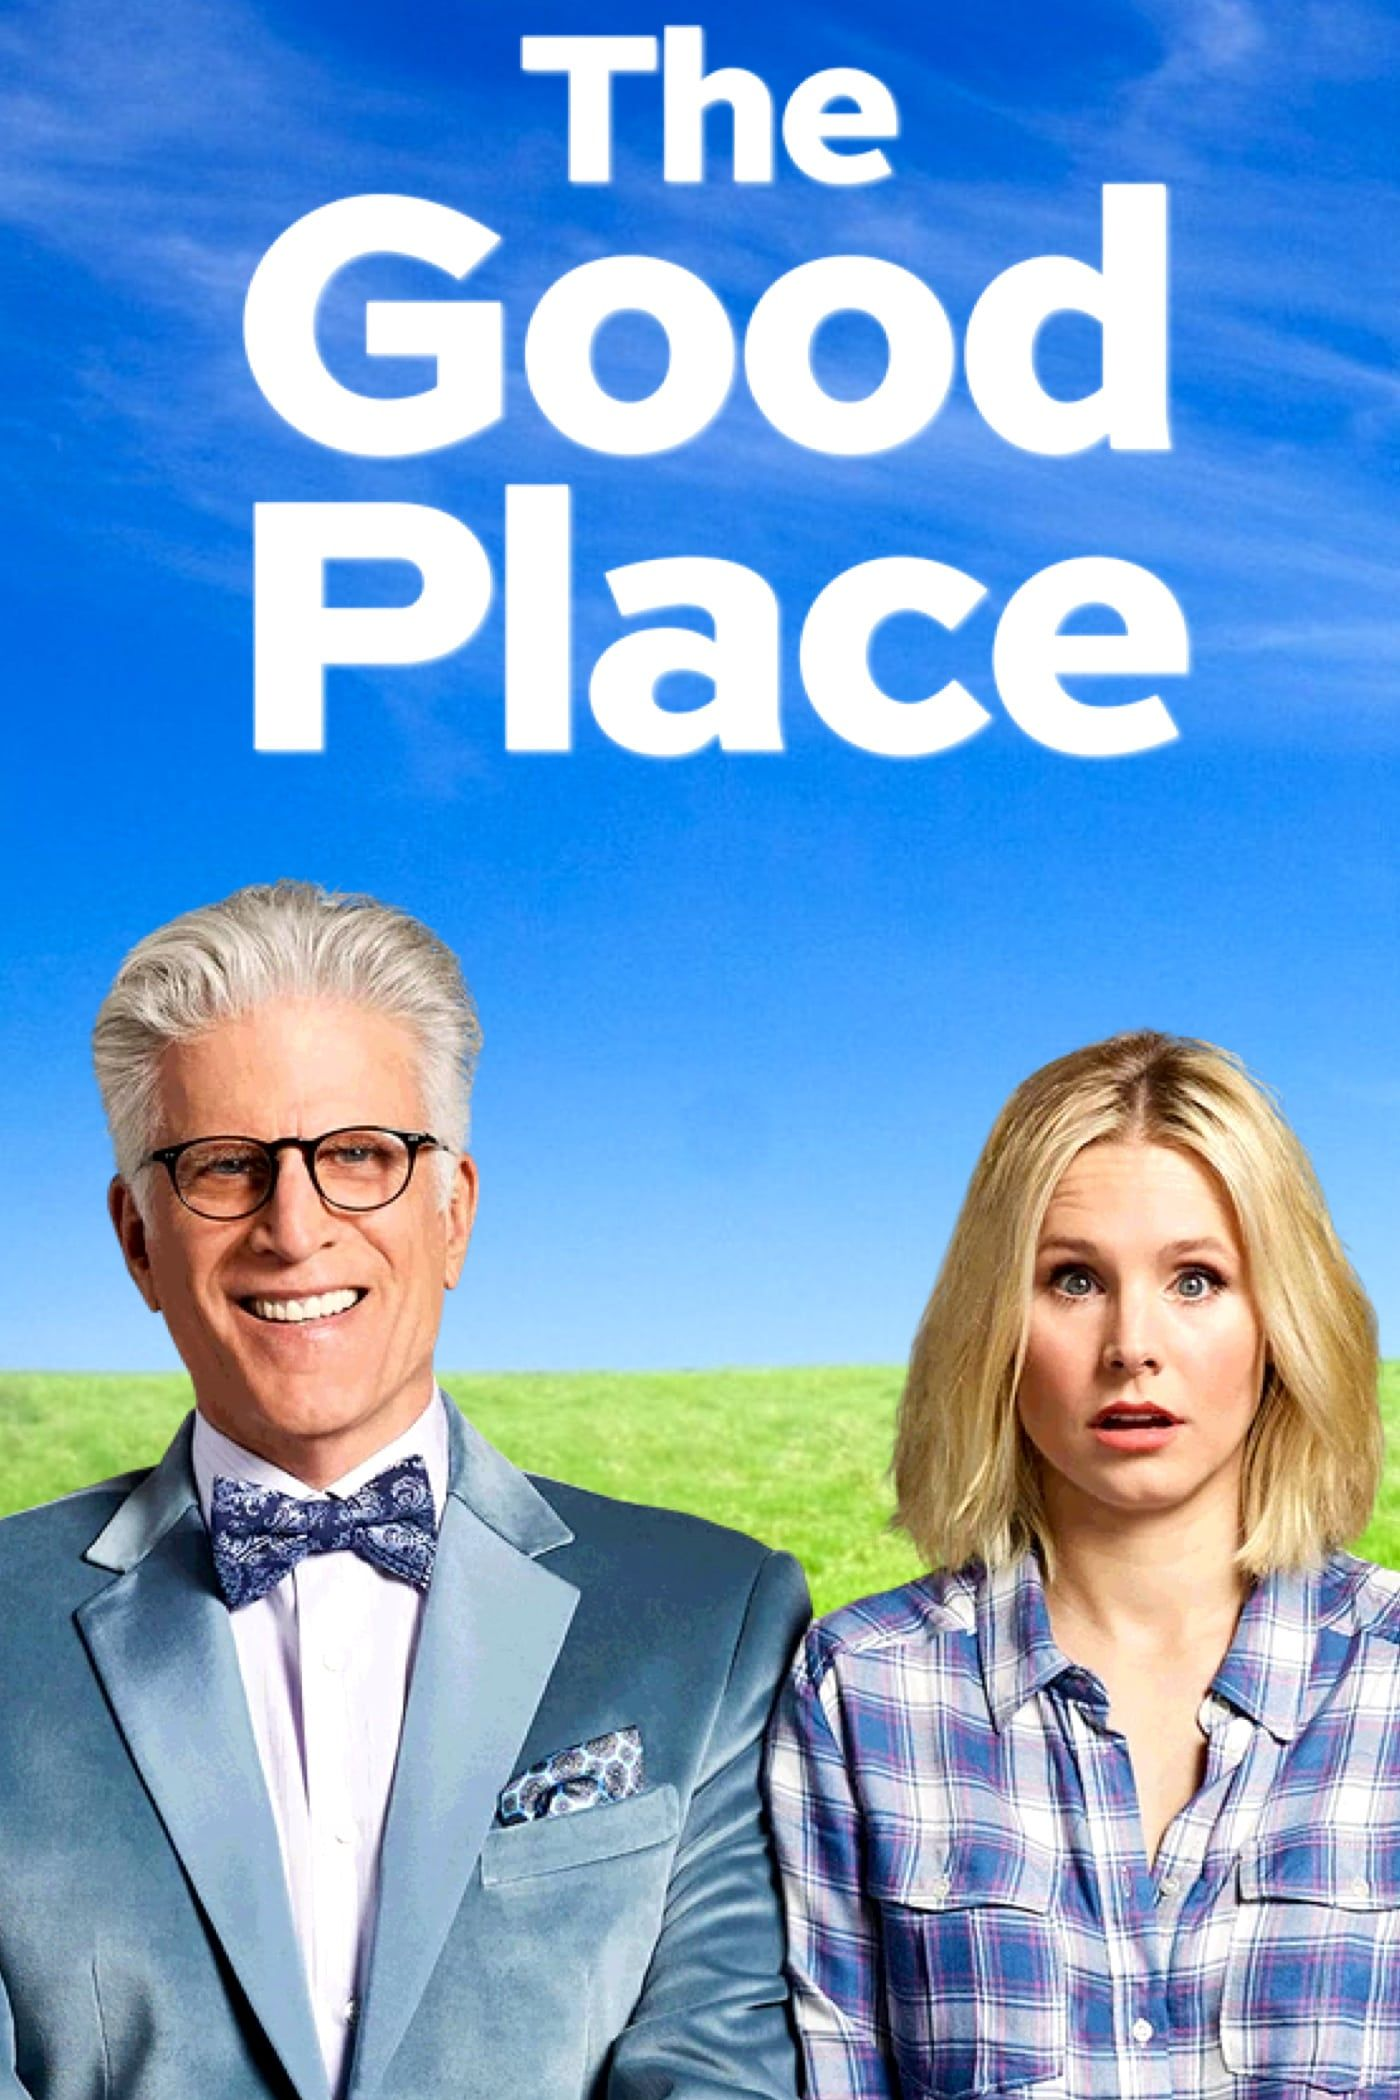 The Good Place Tv Series Full Episodes Hd Quality Click The Picture And Follow The Instruction 100 Secure Th Tv Series Free The Good Place Good Things